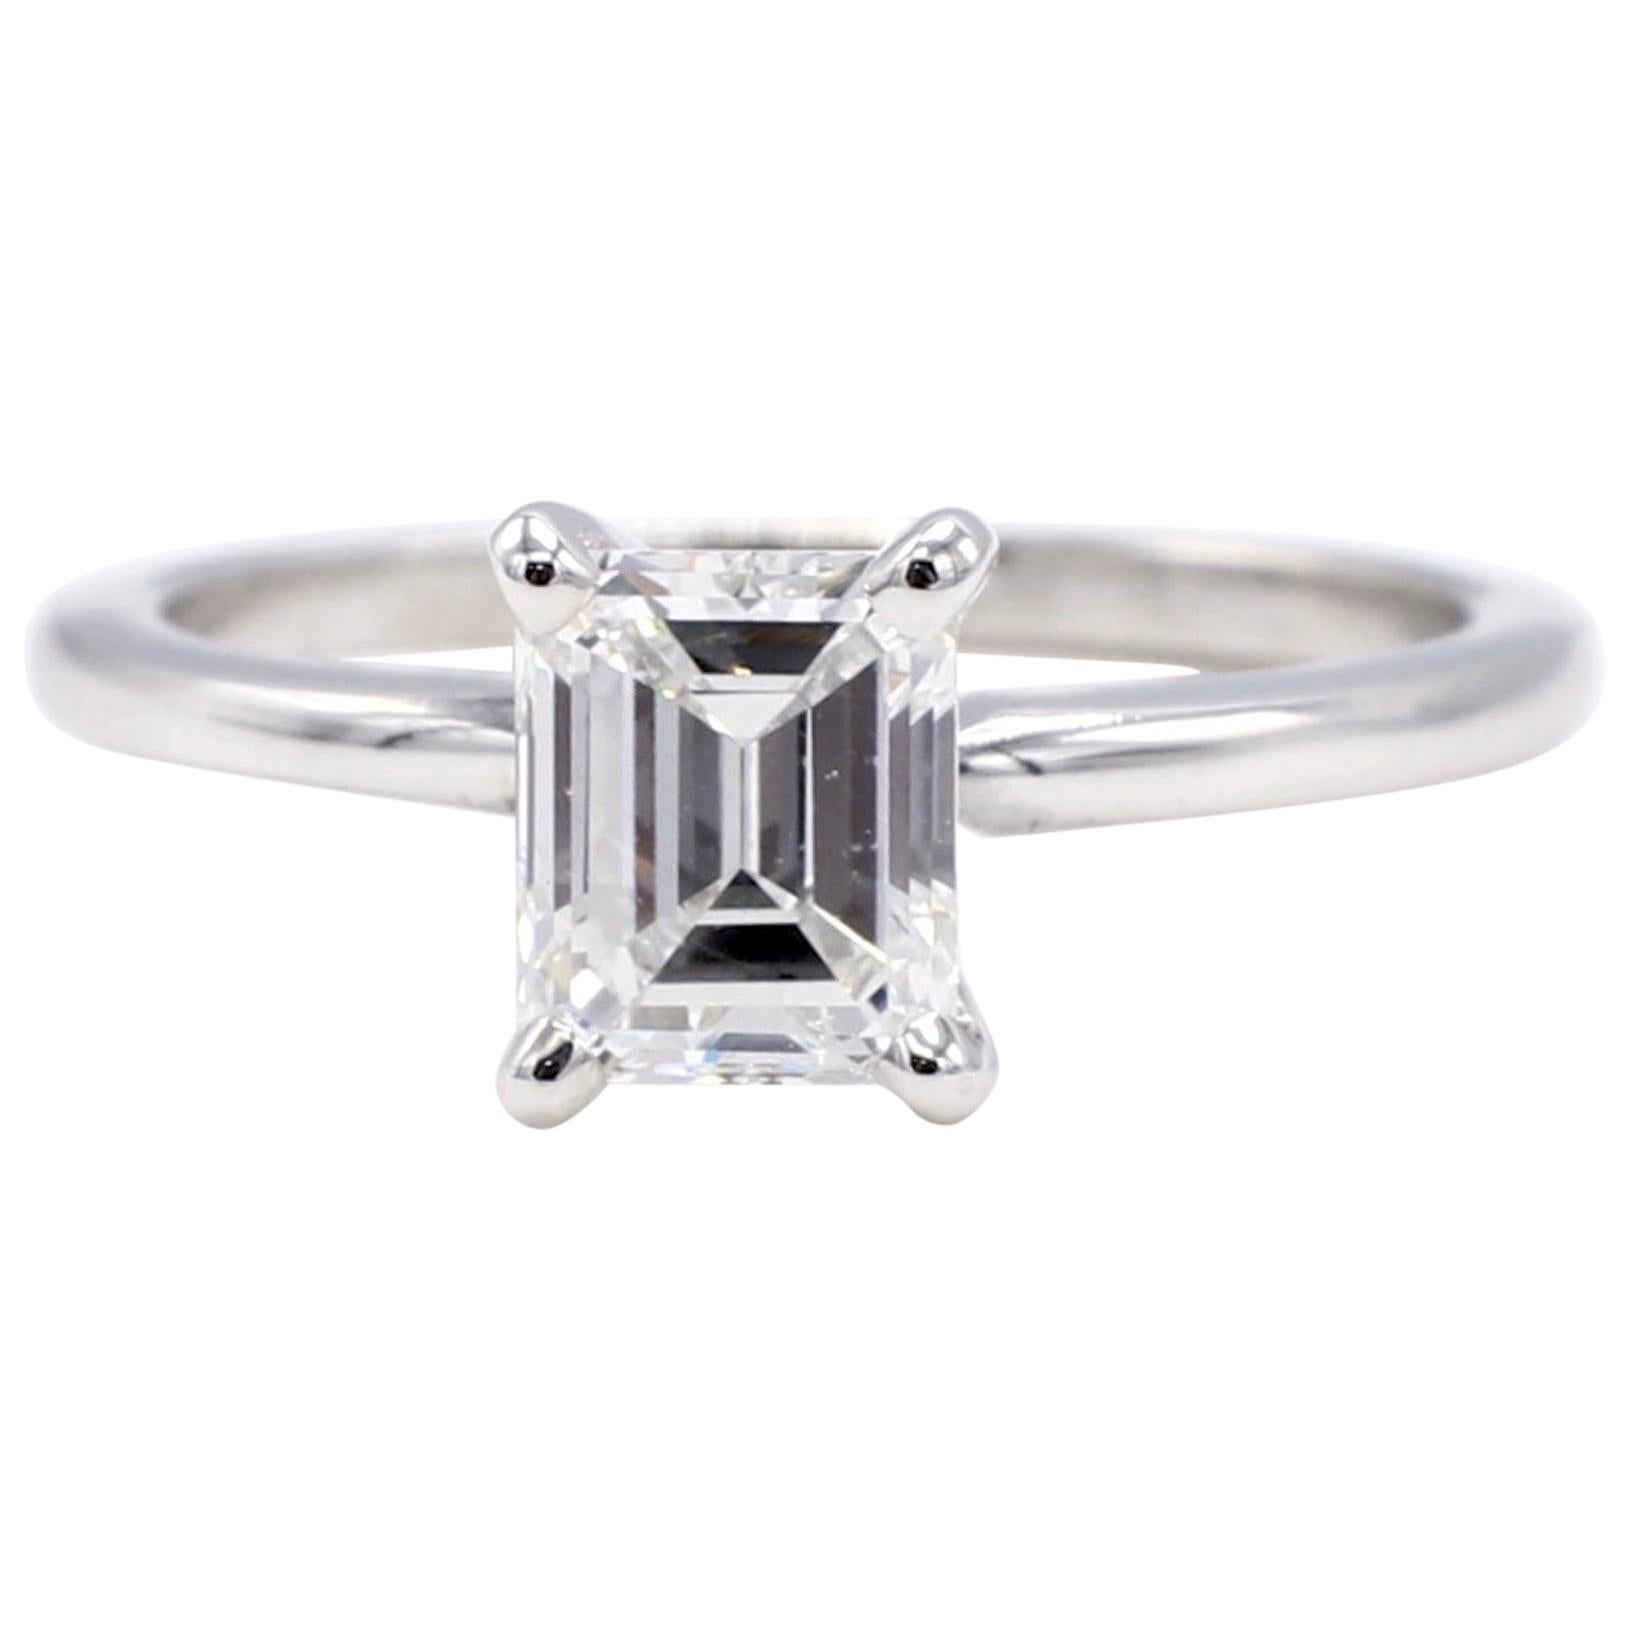 GIA Certified 1.13 Carat Emerald Cut Diamond Solitaire Engagement Ring